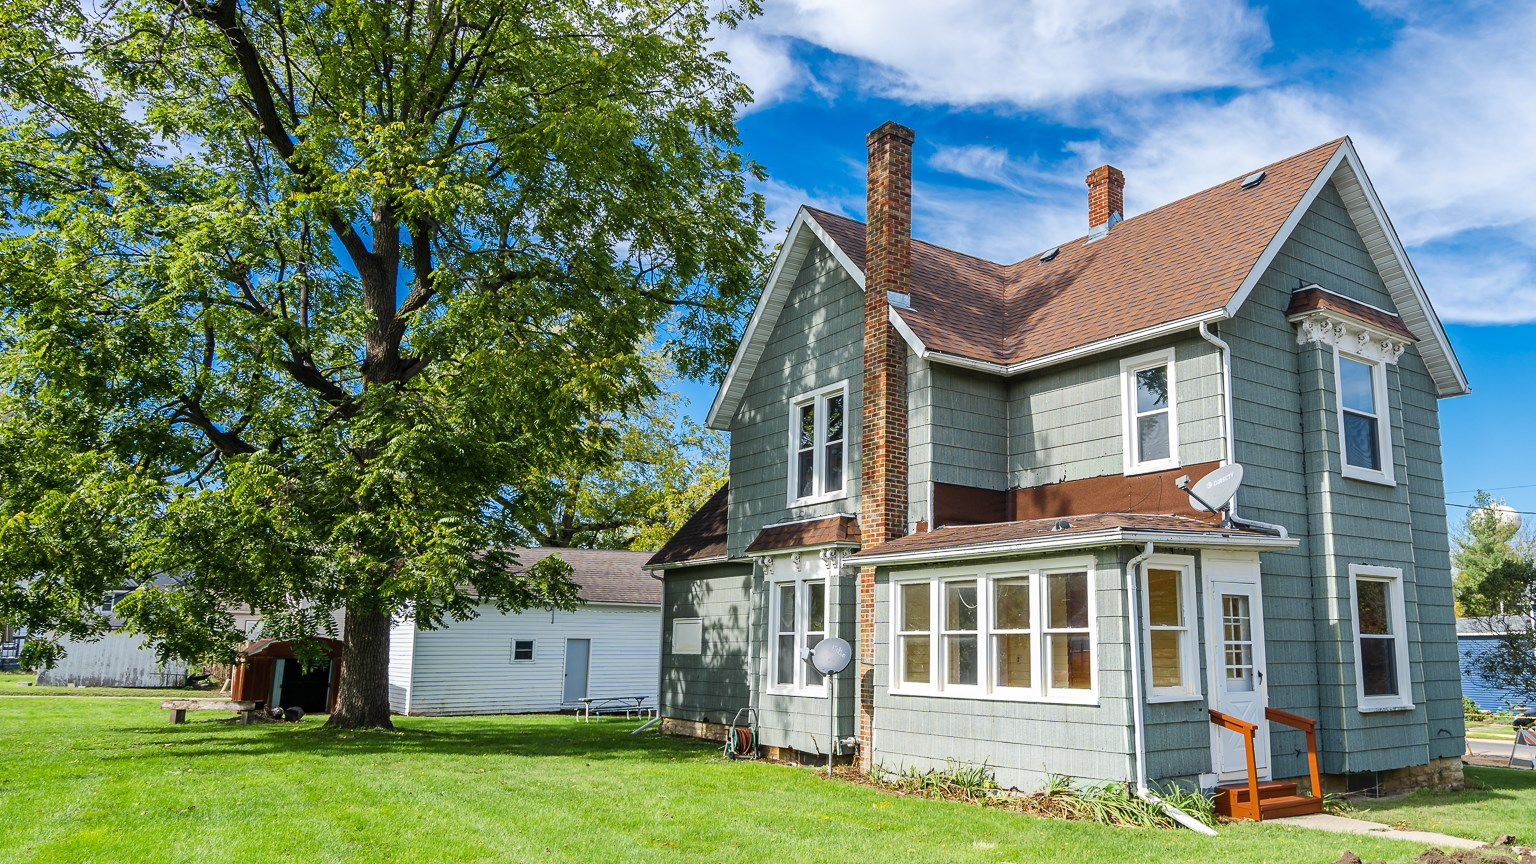 Multi-Family Home In Rowen Grout